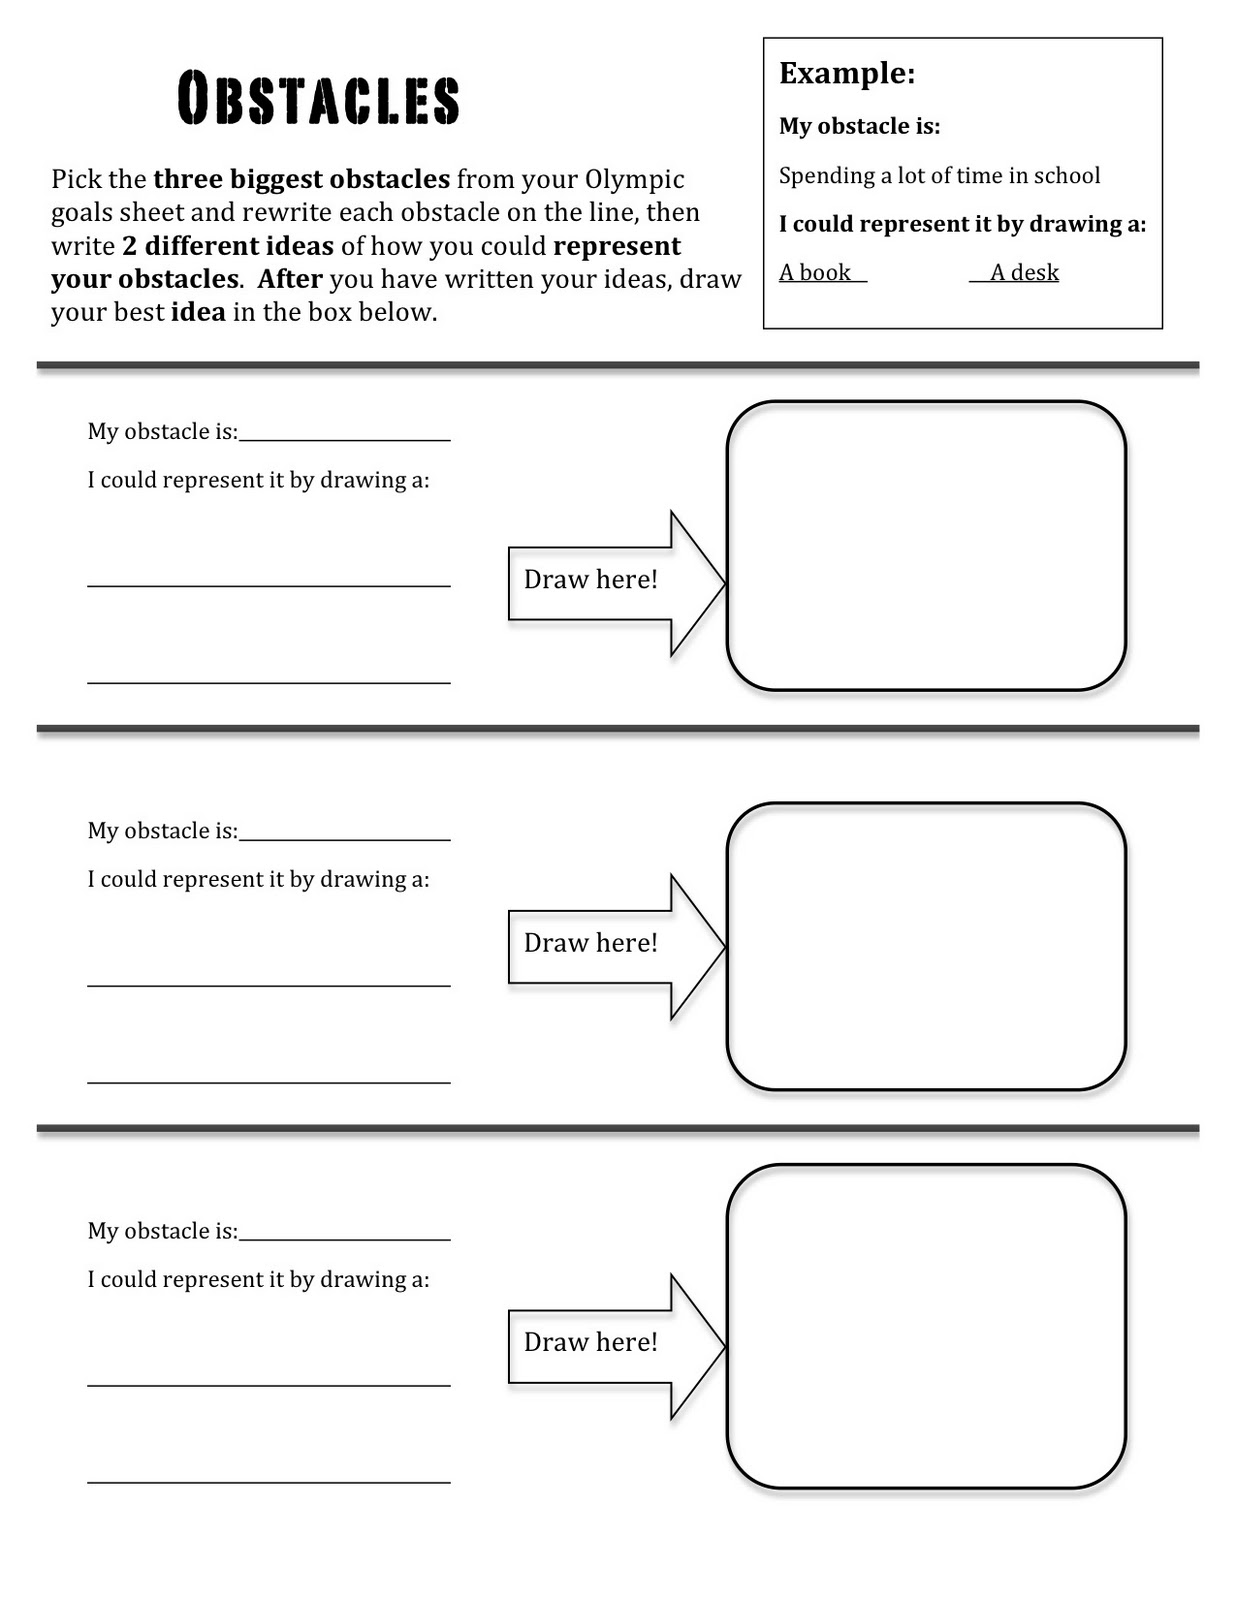 Animal Research Paper Graphic Organizer Top Essay Writing